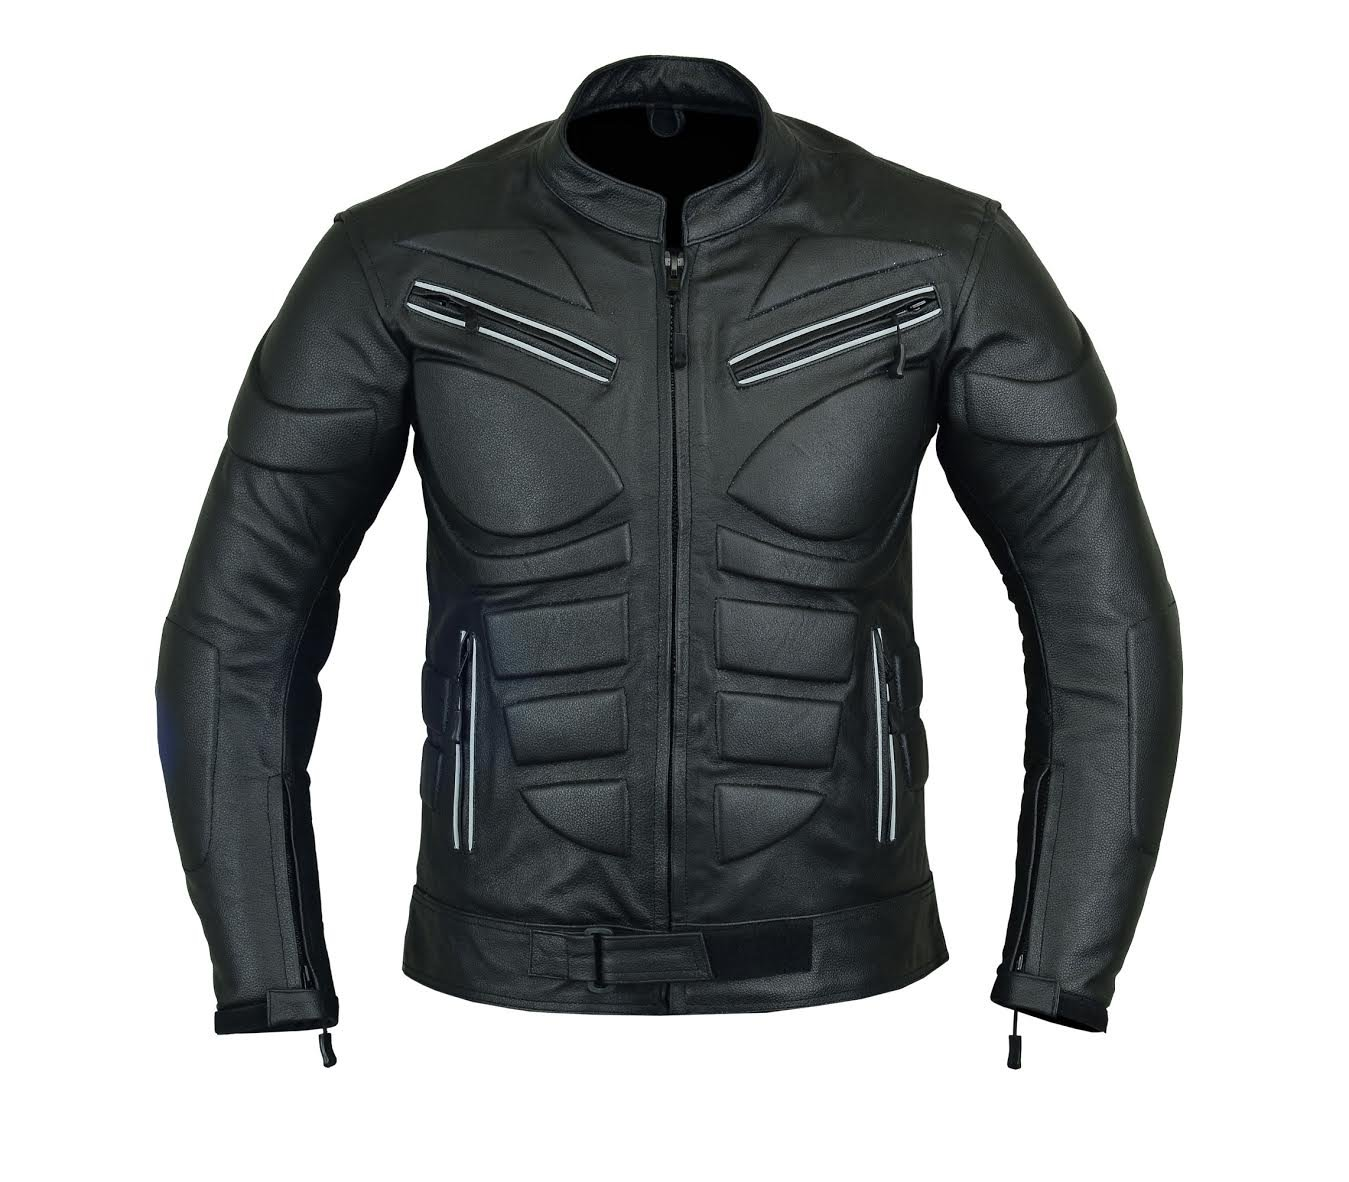 MENS MOTORCYCLE ARMOURED MOTOR SPORTS HIGH PROTECTION LEATHER JACKET BLACK AND RED LJ-1704 S